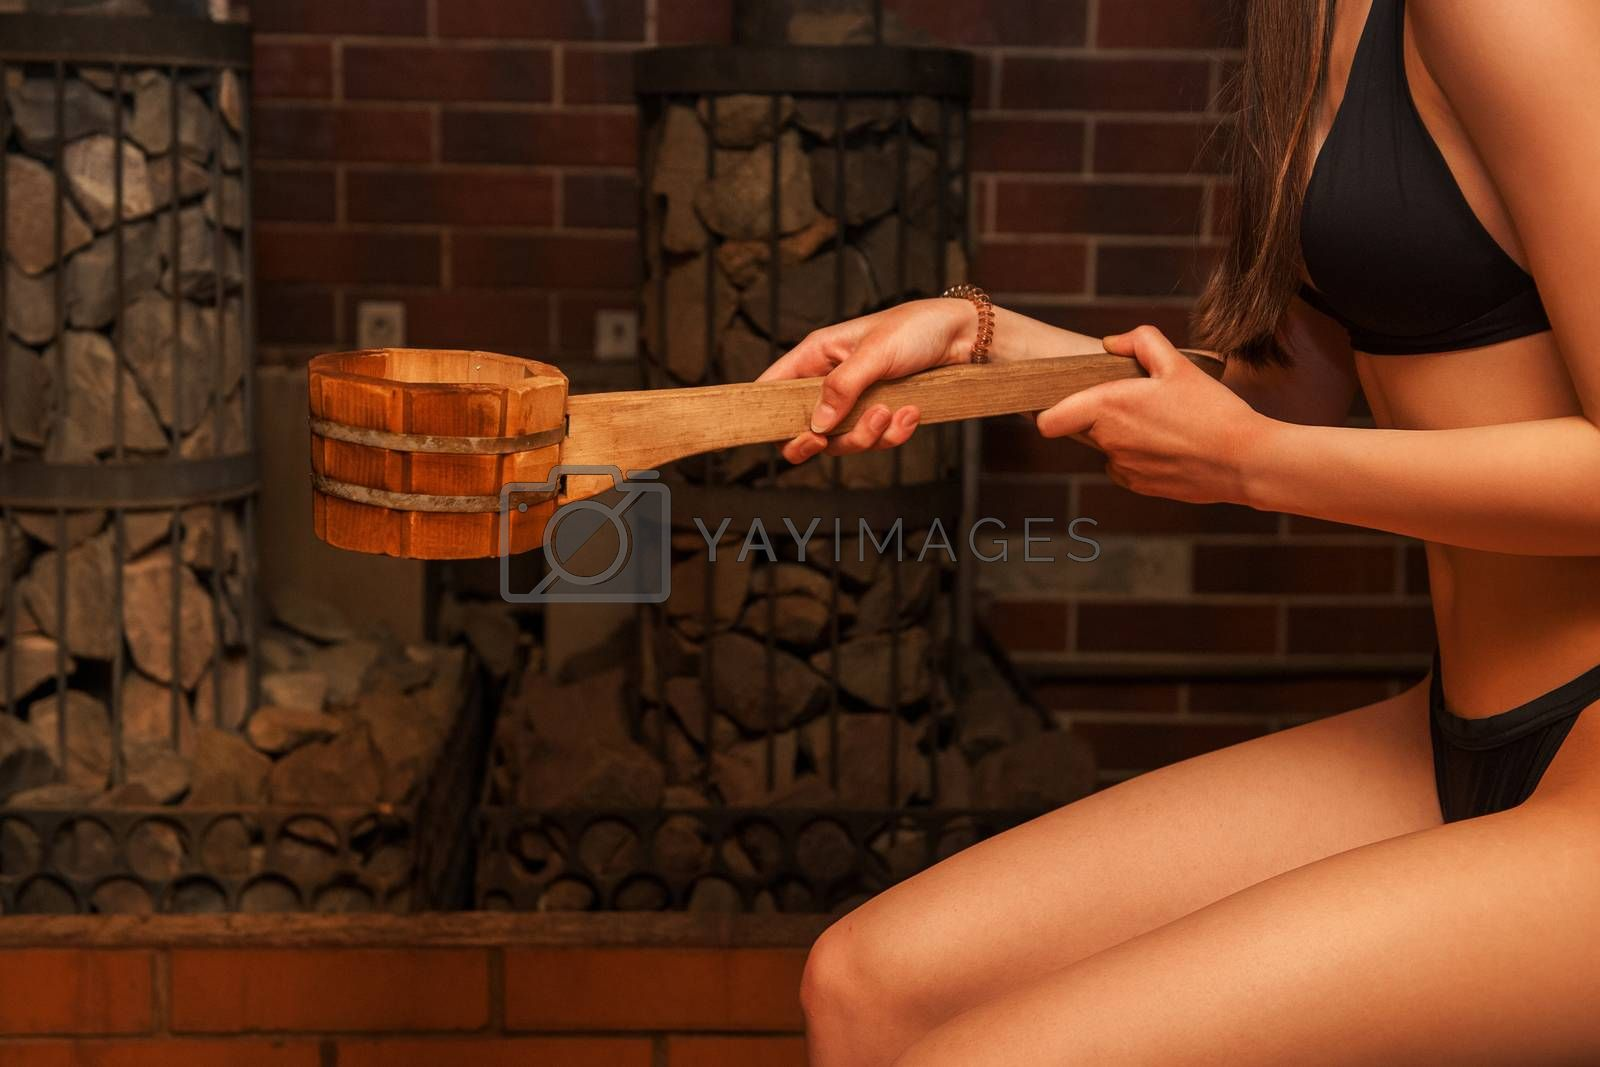 Wooden bath accessories with aromatic oil bottle for bath in the sauna and woman on background